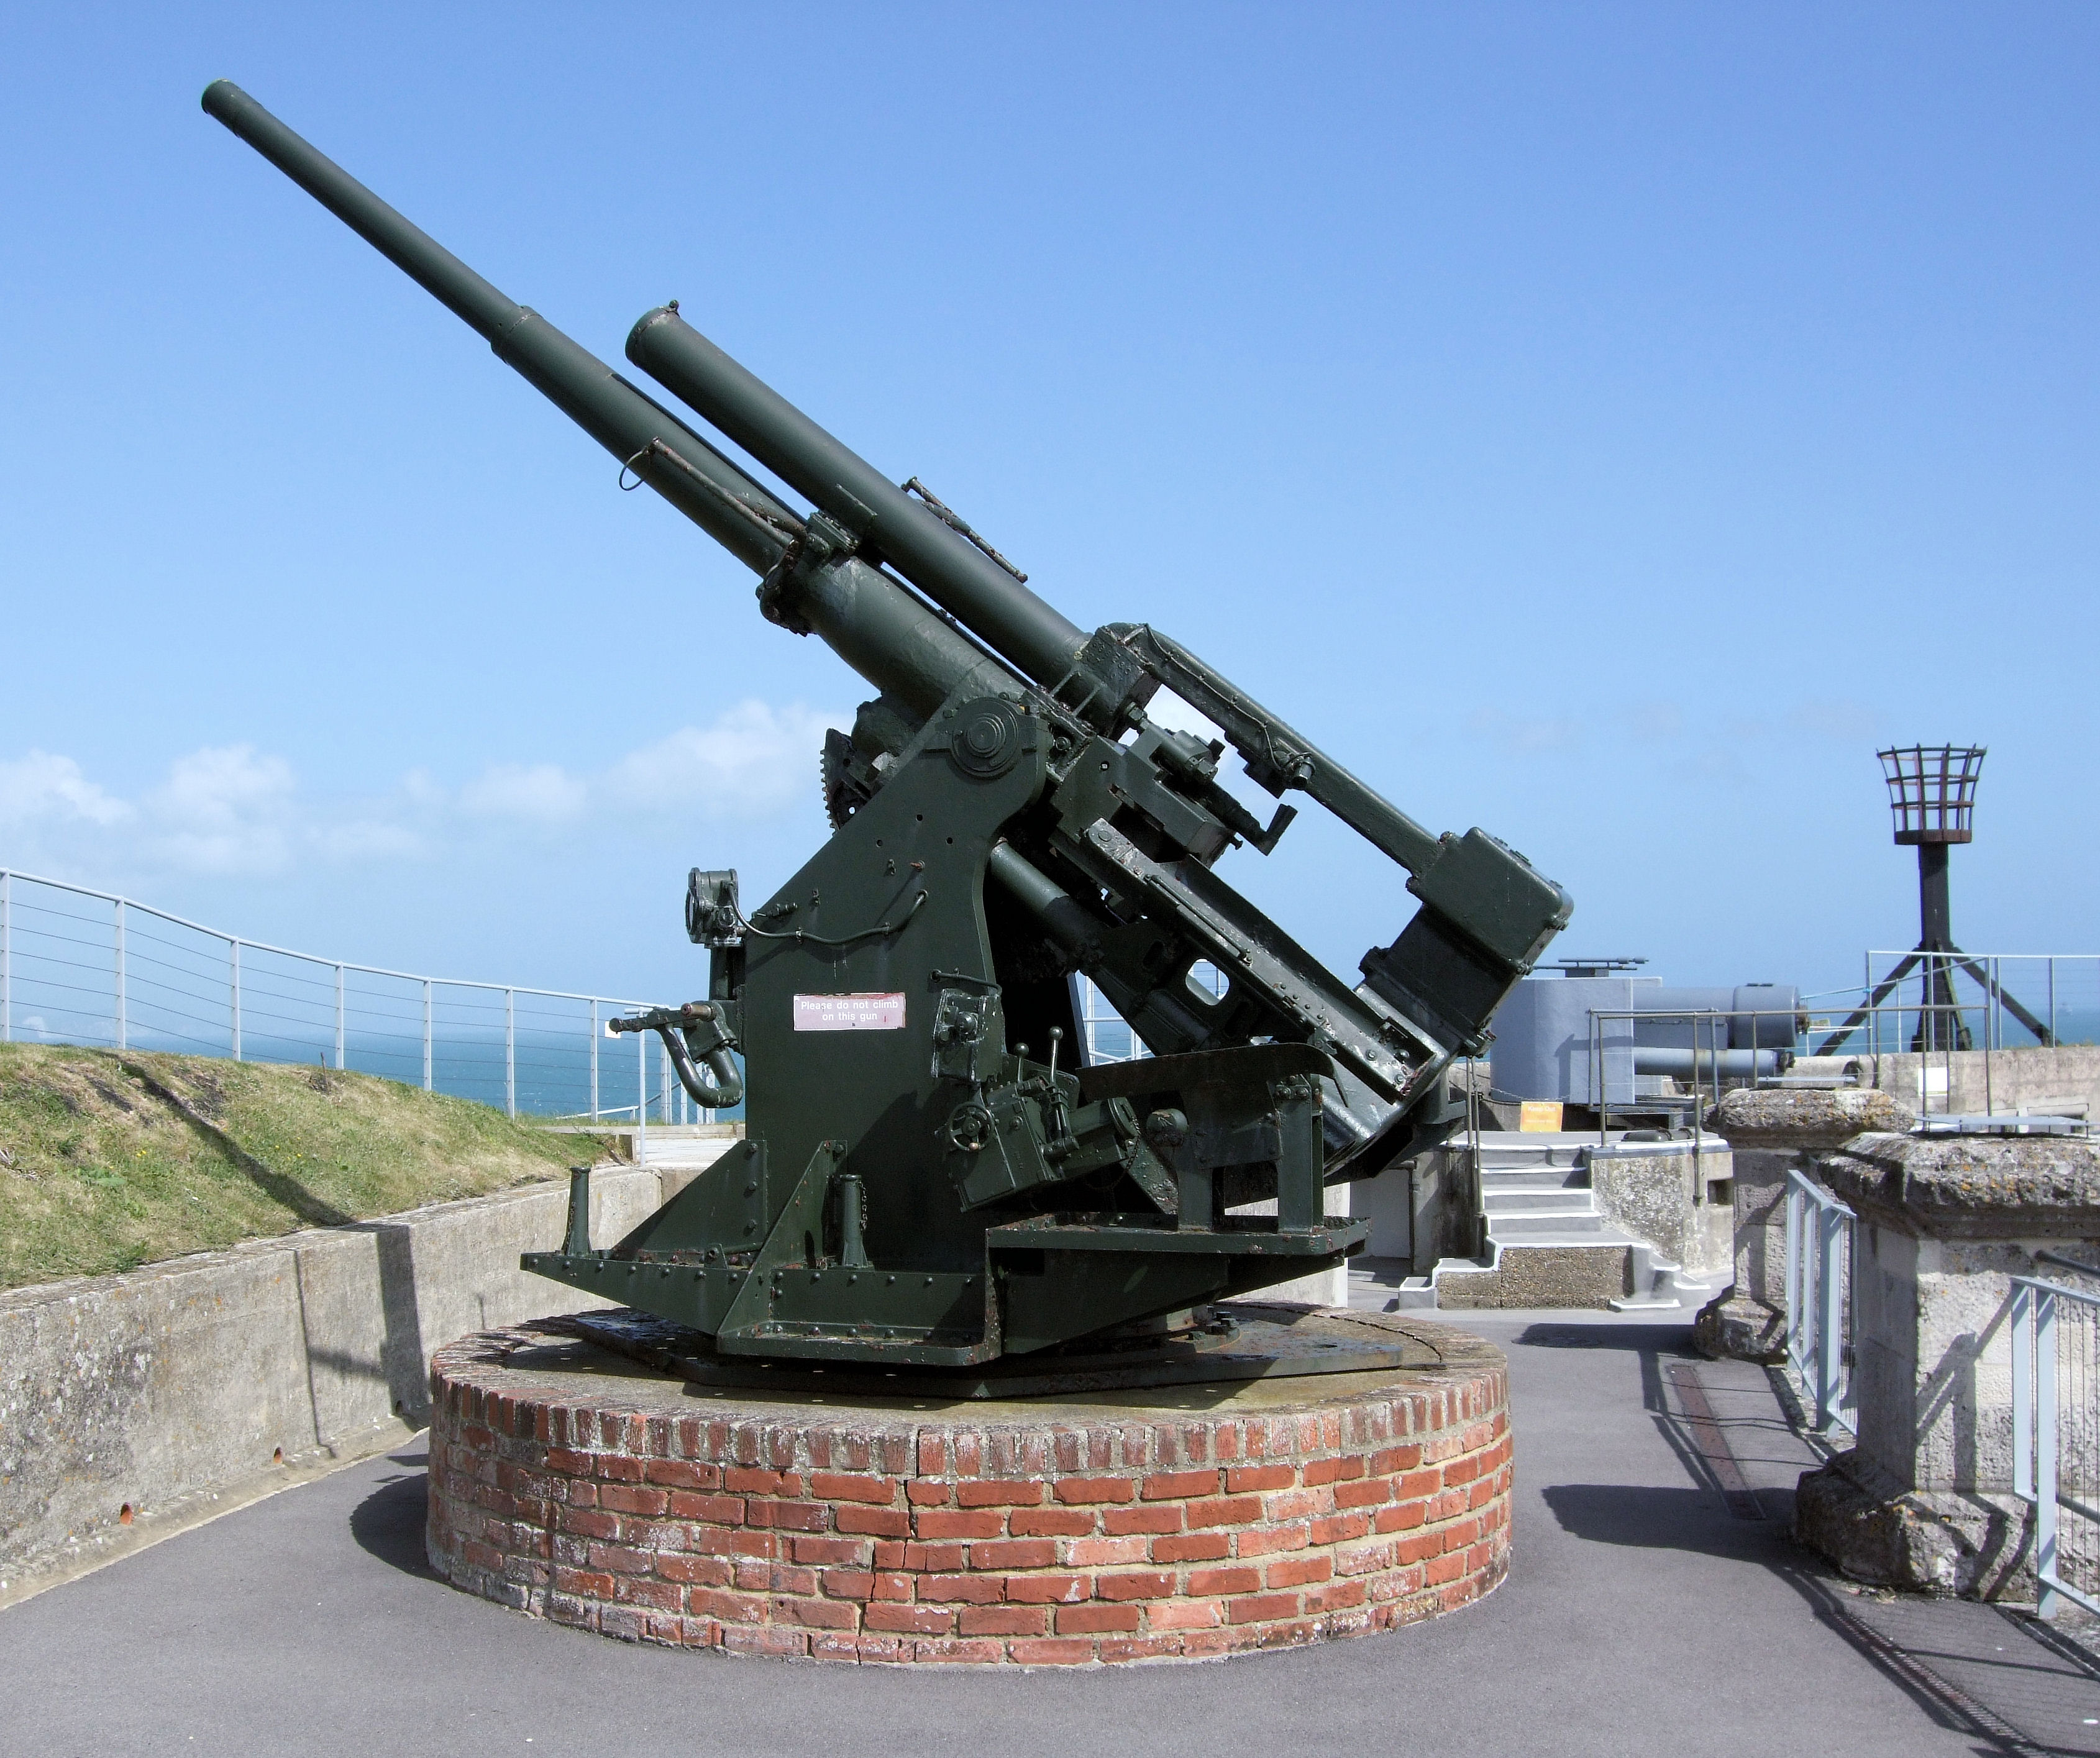 File:3.7 Inch Anti-Aircraft Gun, Nothe Fort, Weymouth.jpg ...